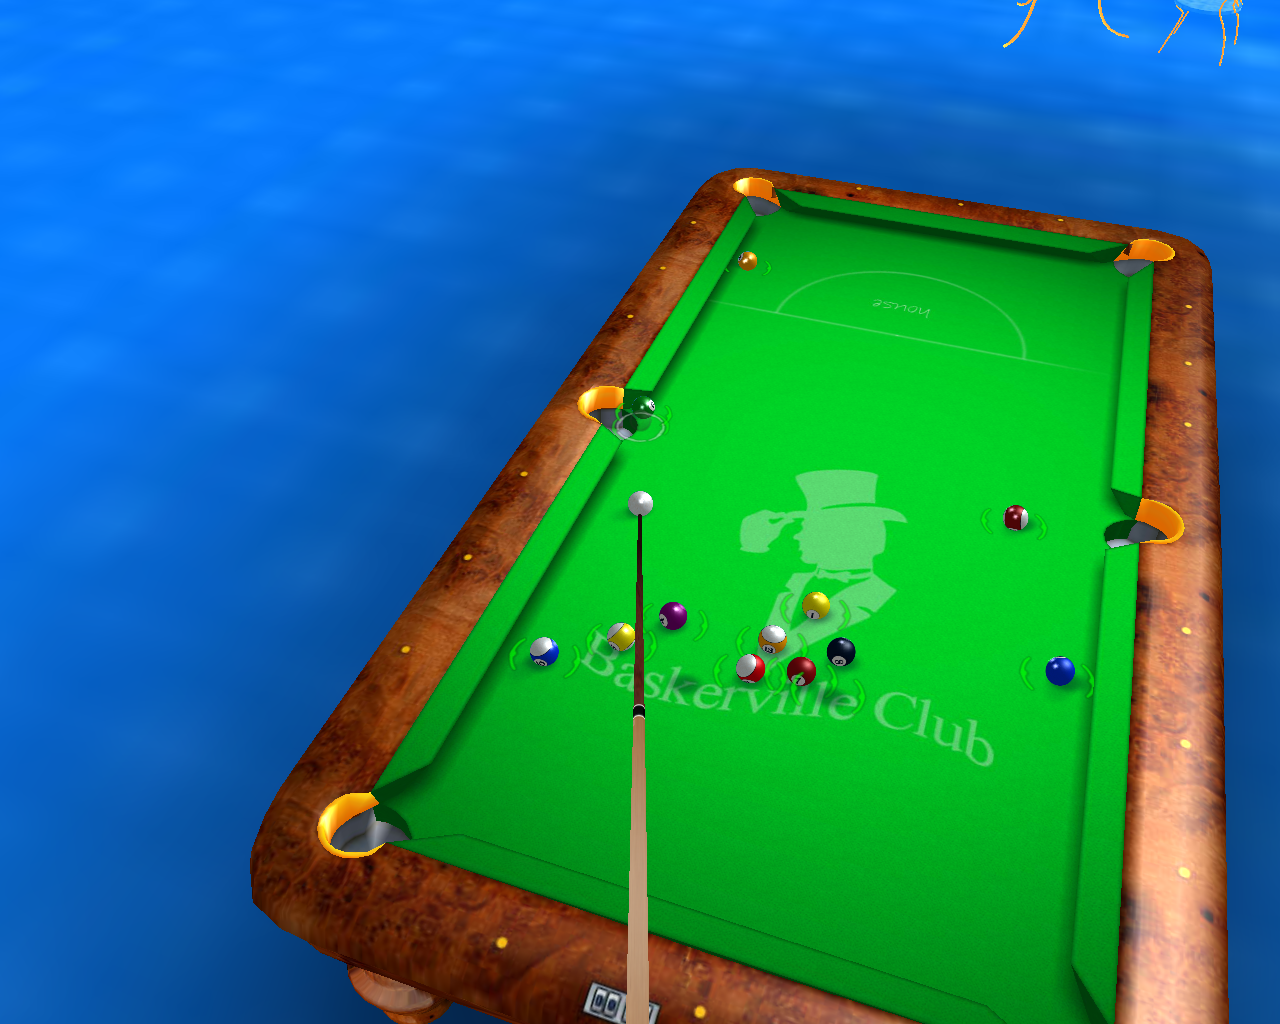 http://game.giveawayoftheday.com/wp-content/uploads/2012/12/Pool8ball_003.png